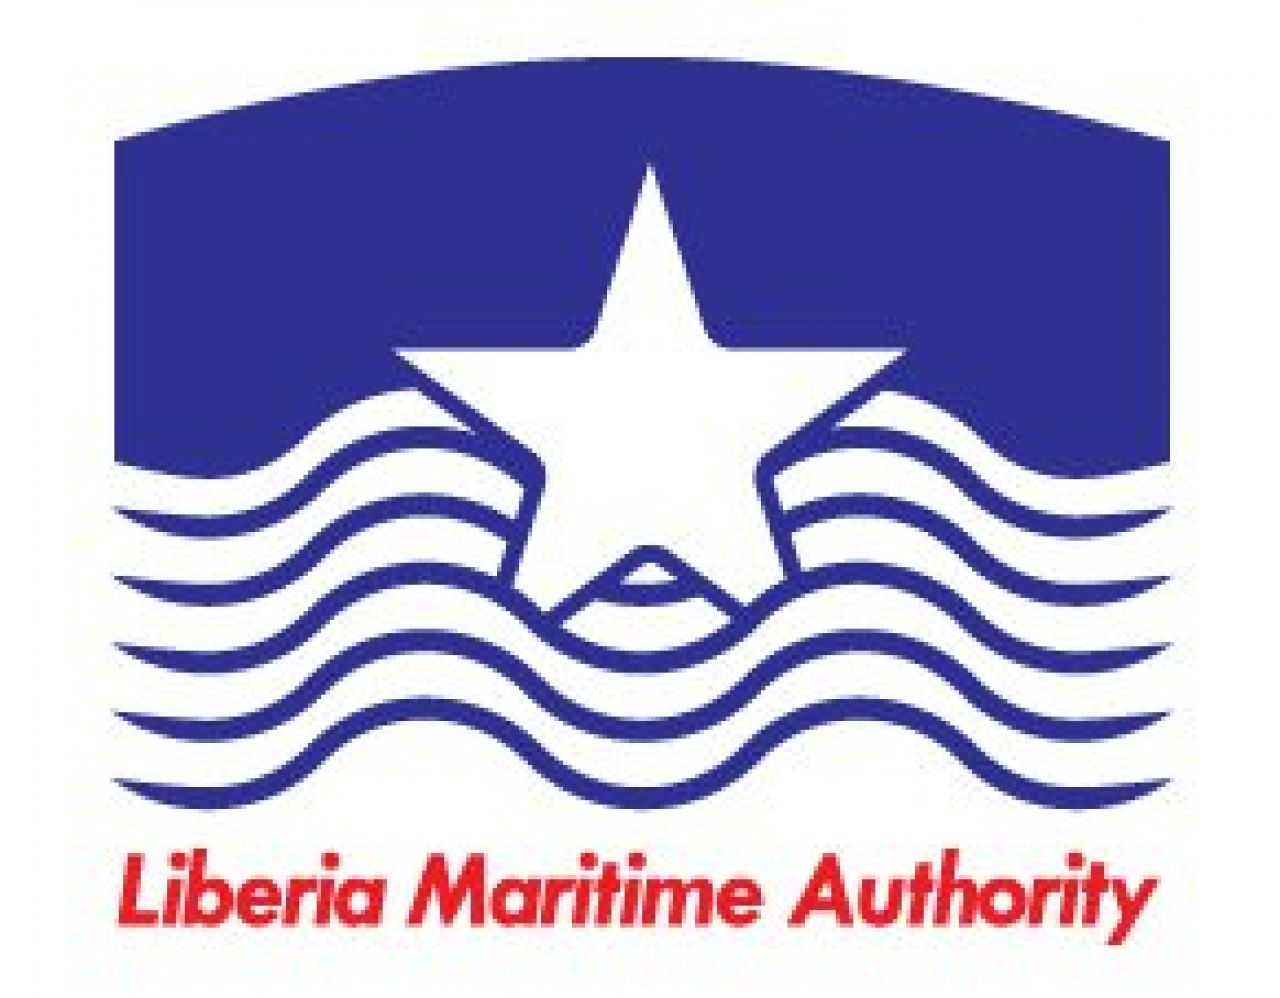 LIBERIA MARITIME AUTHORITY